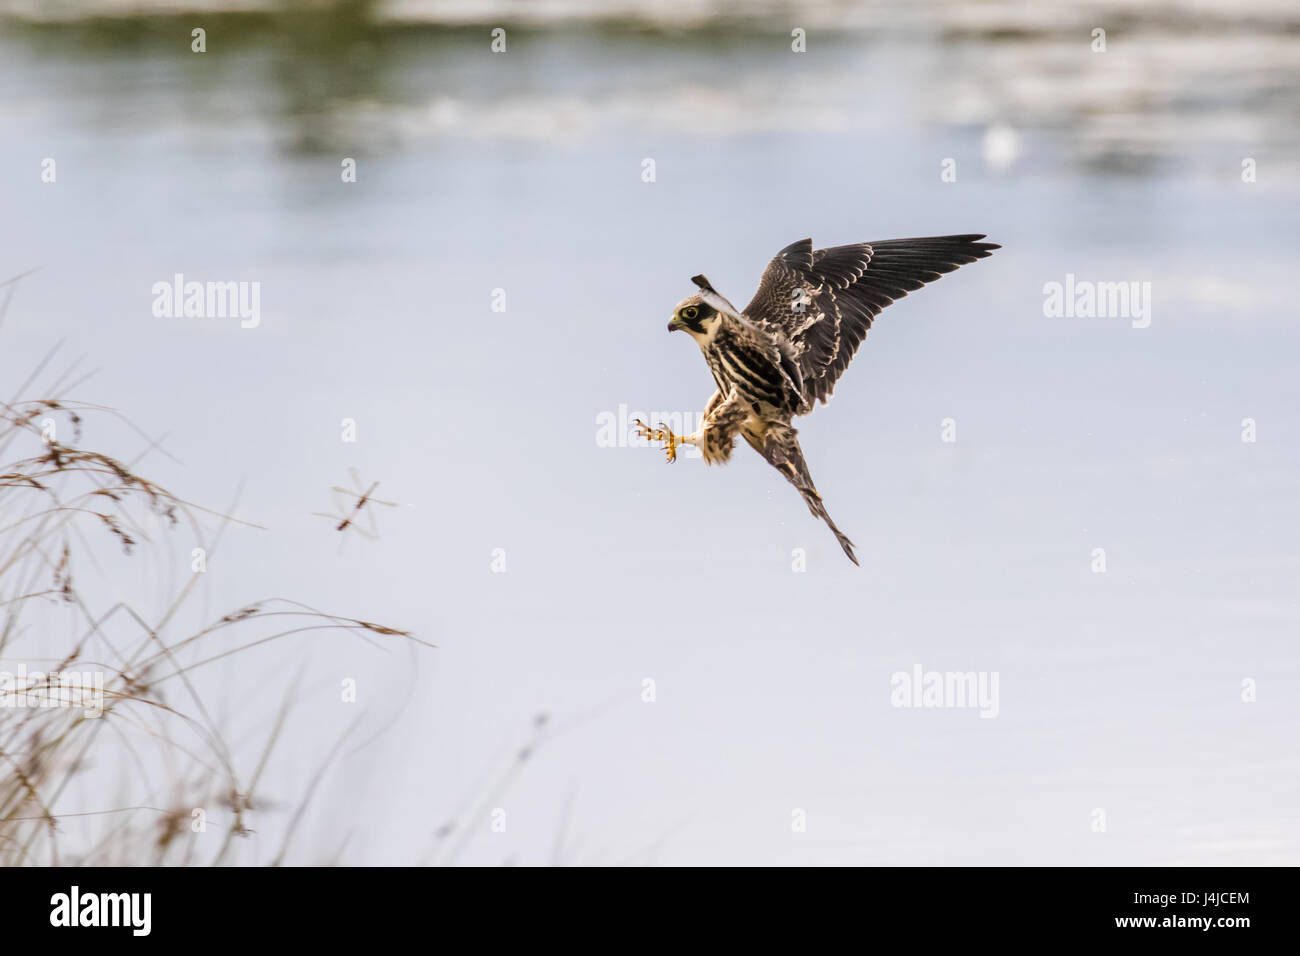 Eurasian Hobby falcon (Falco subbuteo) flying, in flight, catching predating dragonflies dragonfly over pond in - Stock Image